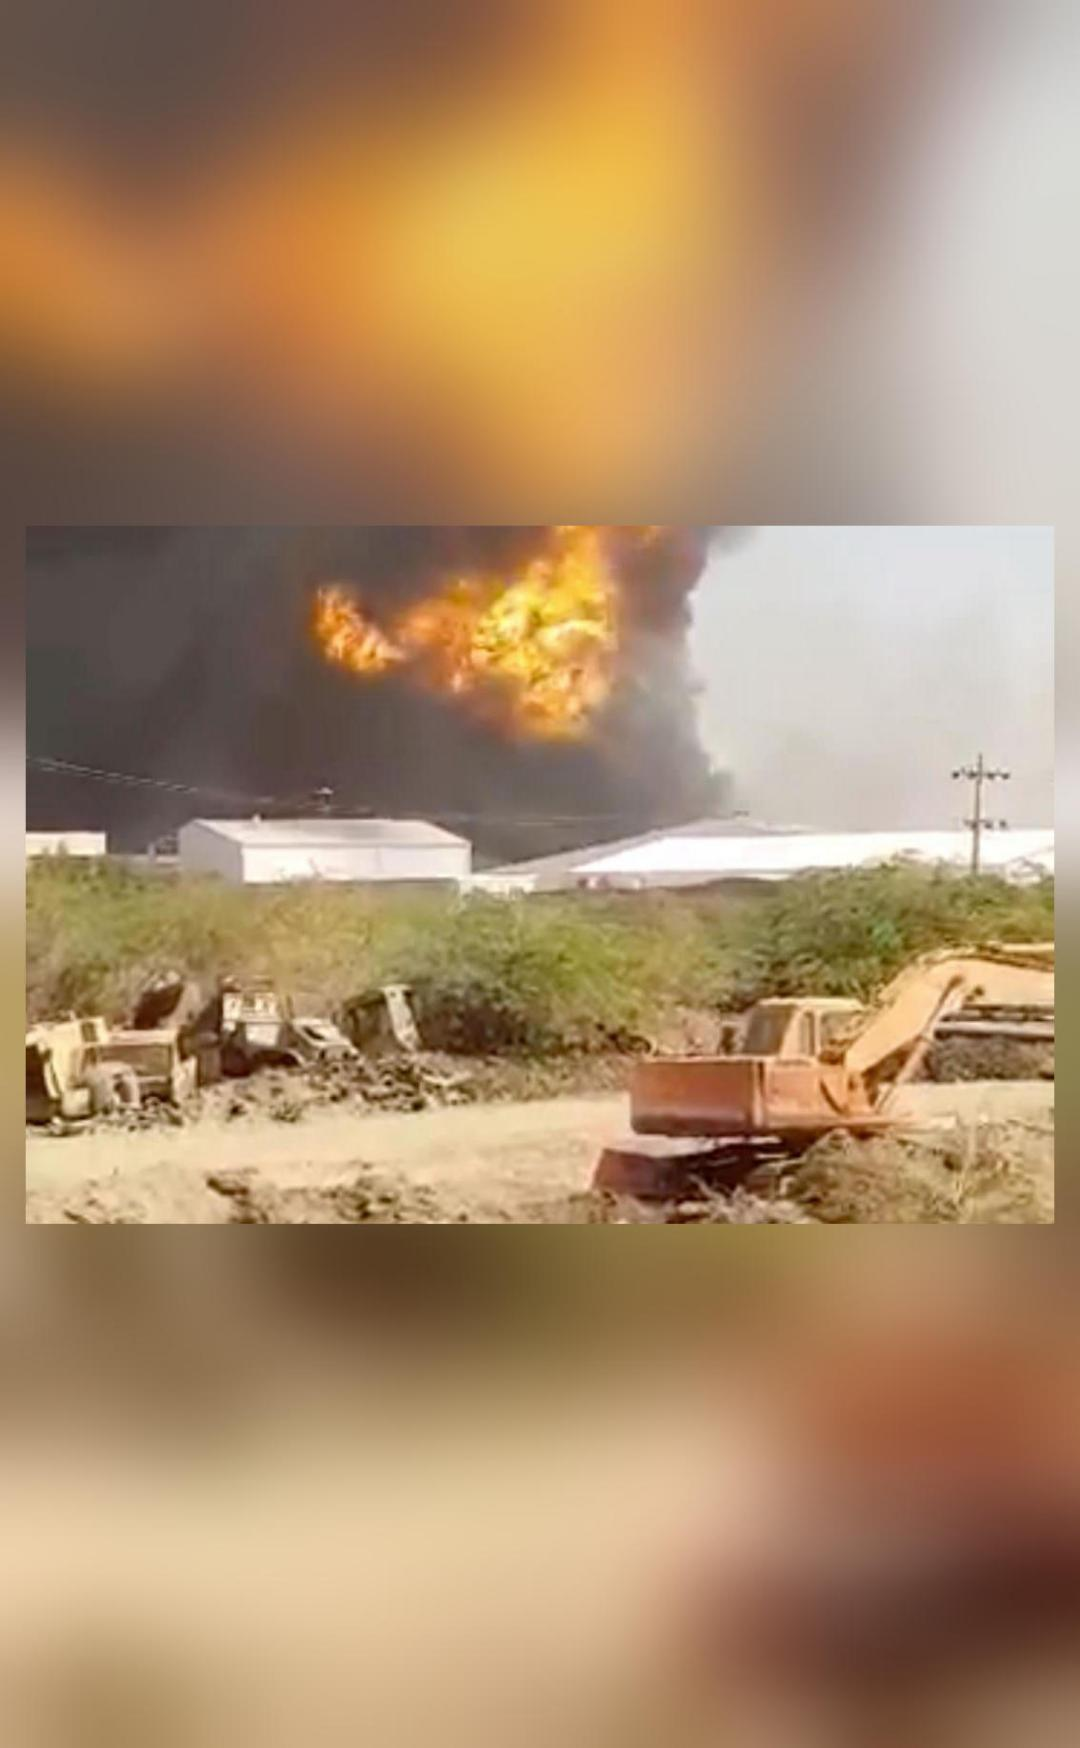 Several Indians among 23 killed, 130 injured in Sudan factory blast